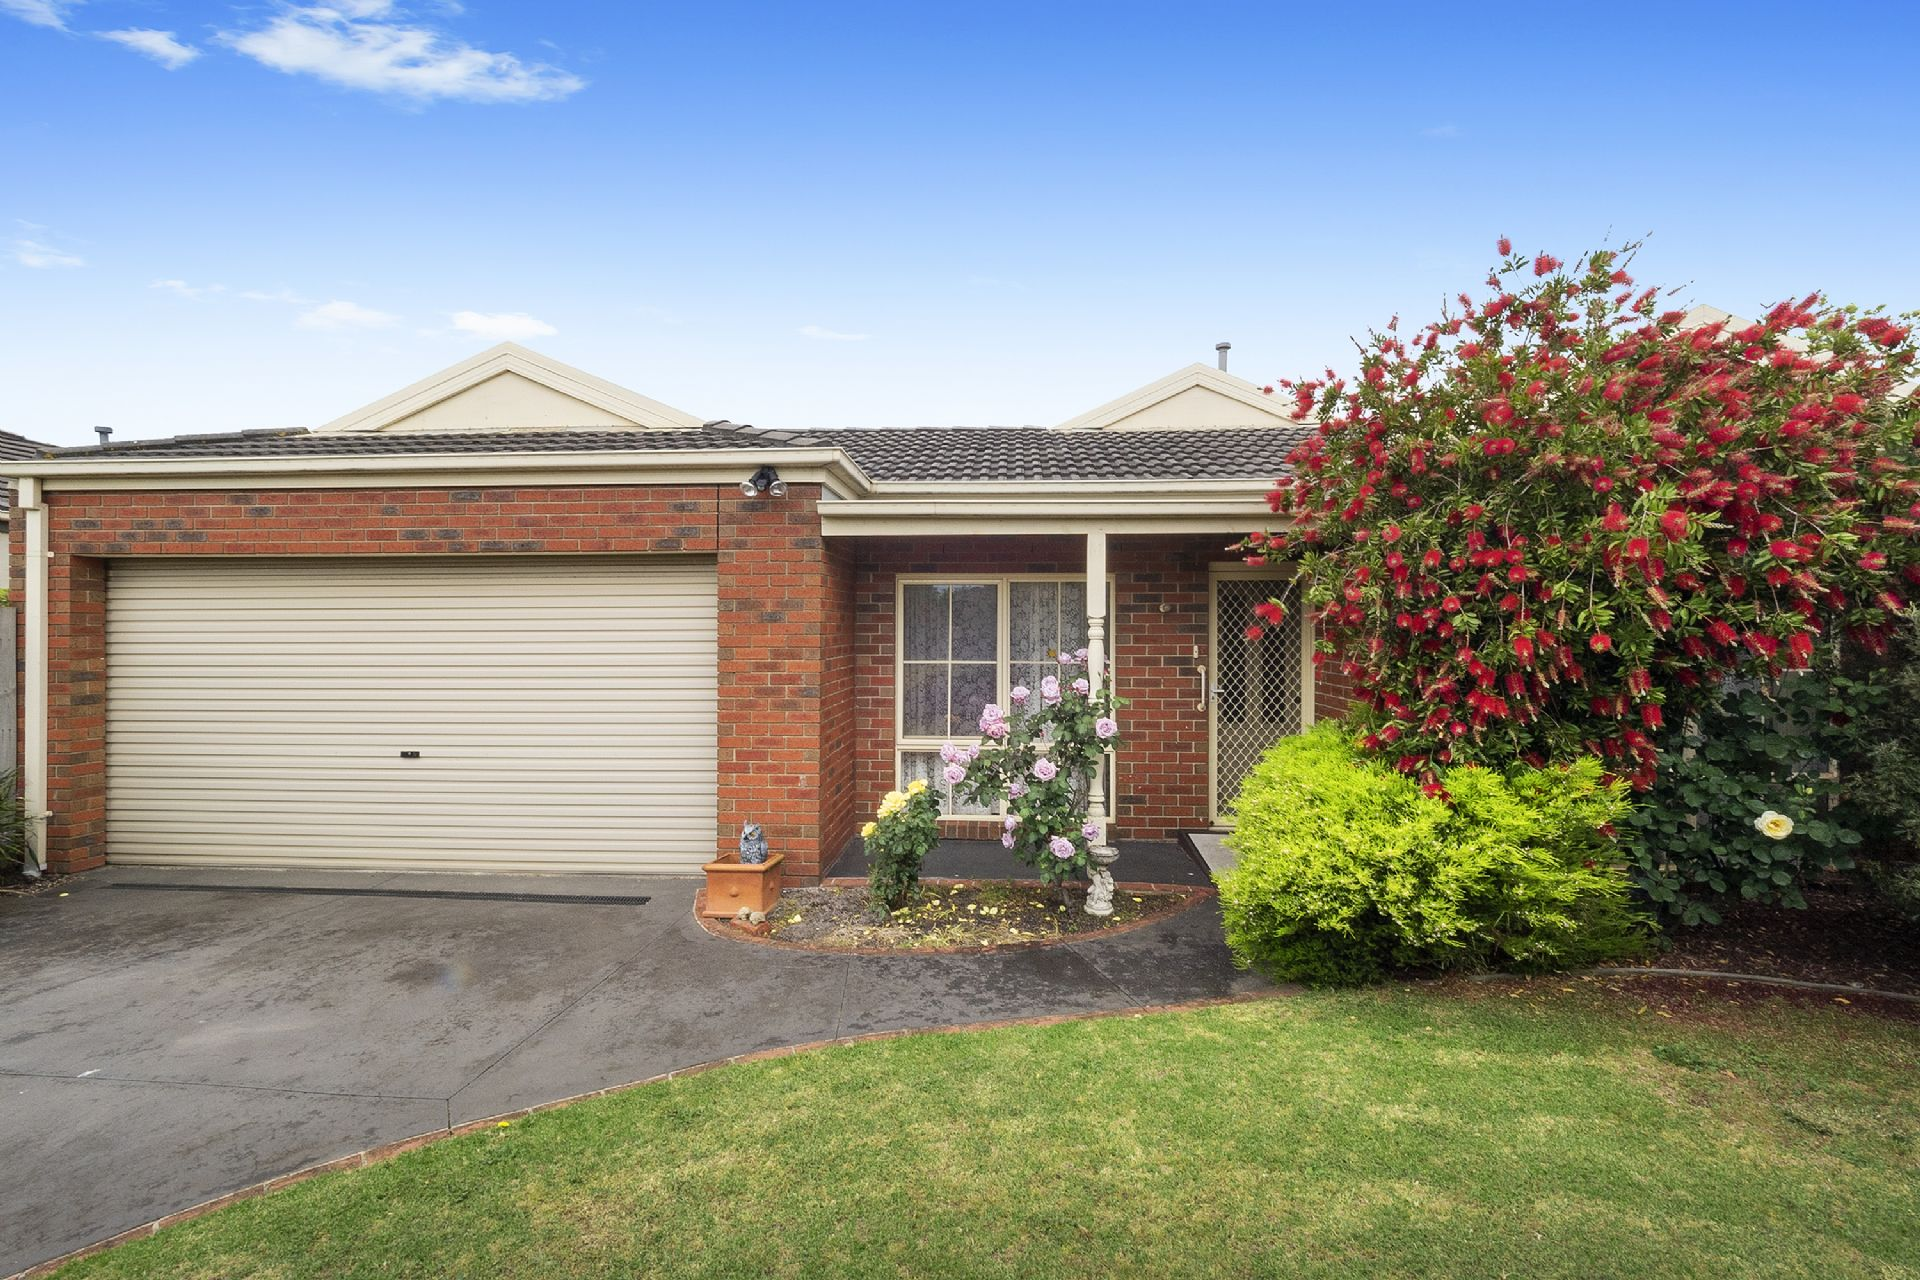 1/19 Haig Street, MORNINGTON, VIC, 3931 - Image